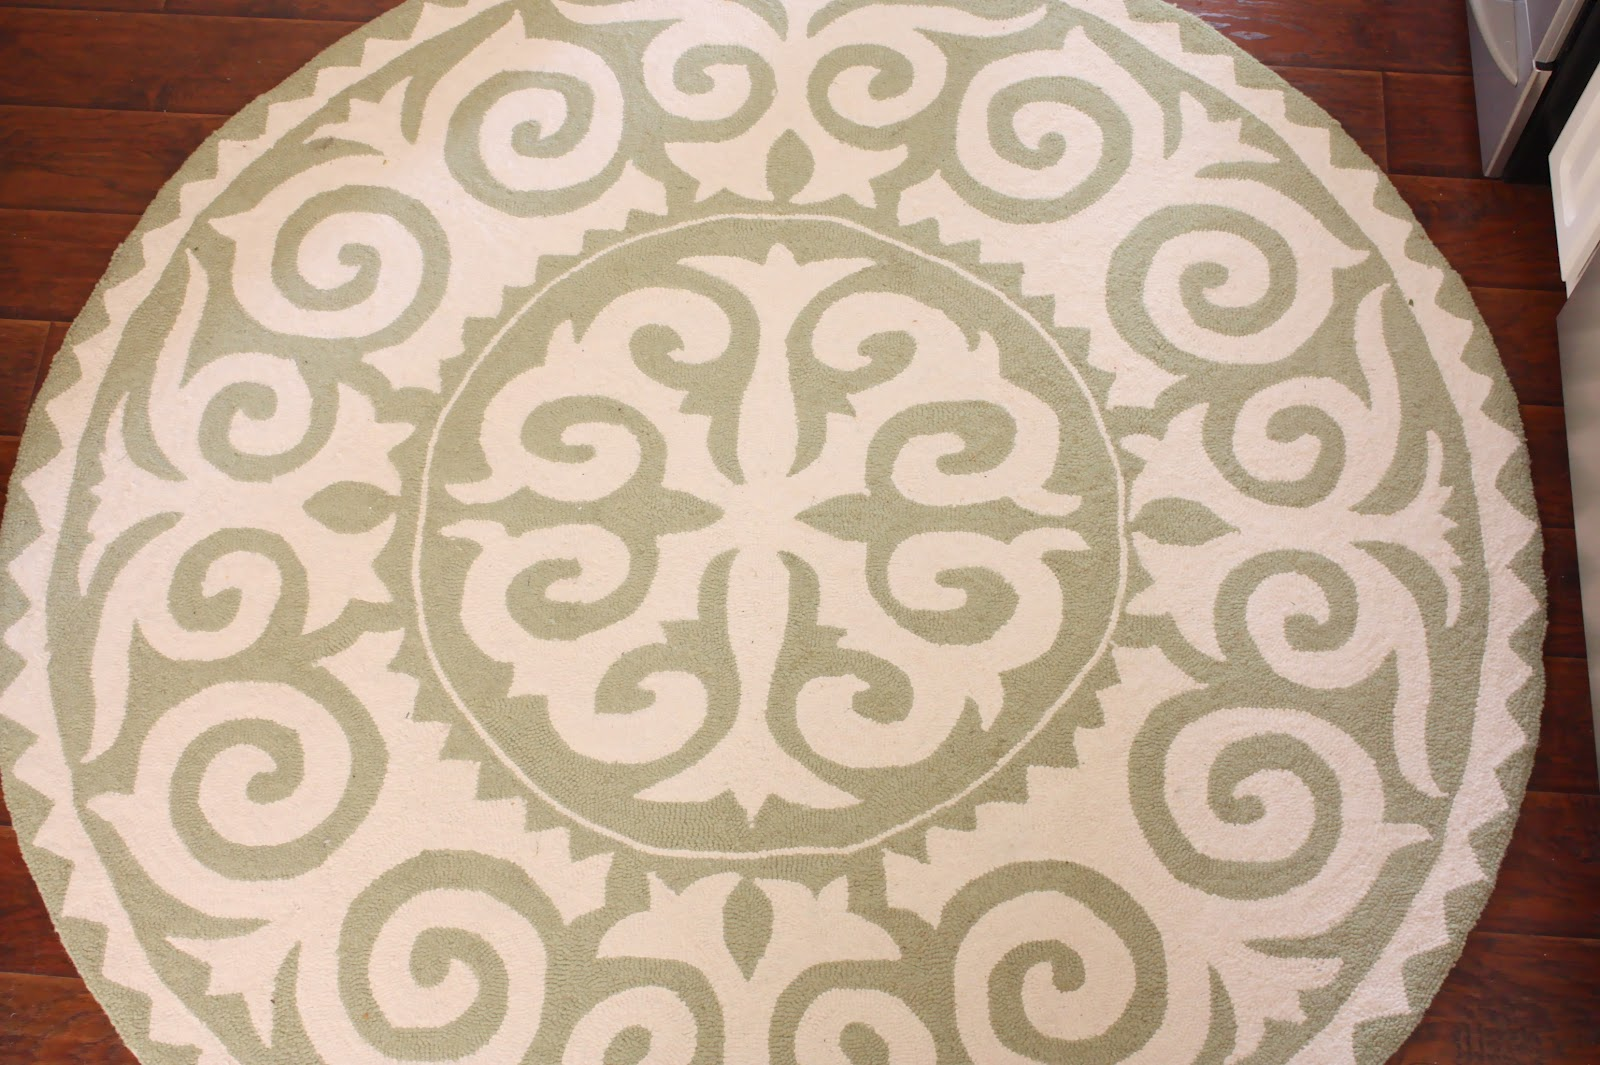 Round Rooster Kitchen Rugs Round Kitchen Rugs Cliff Kitchen